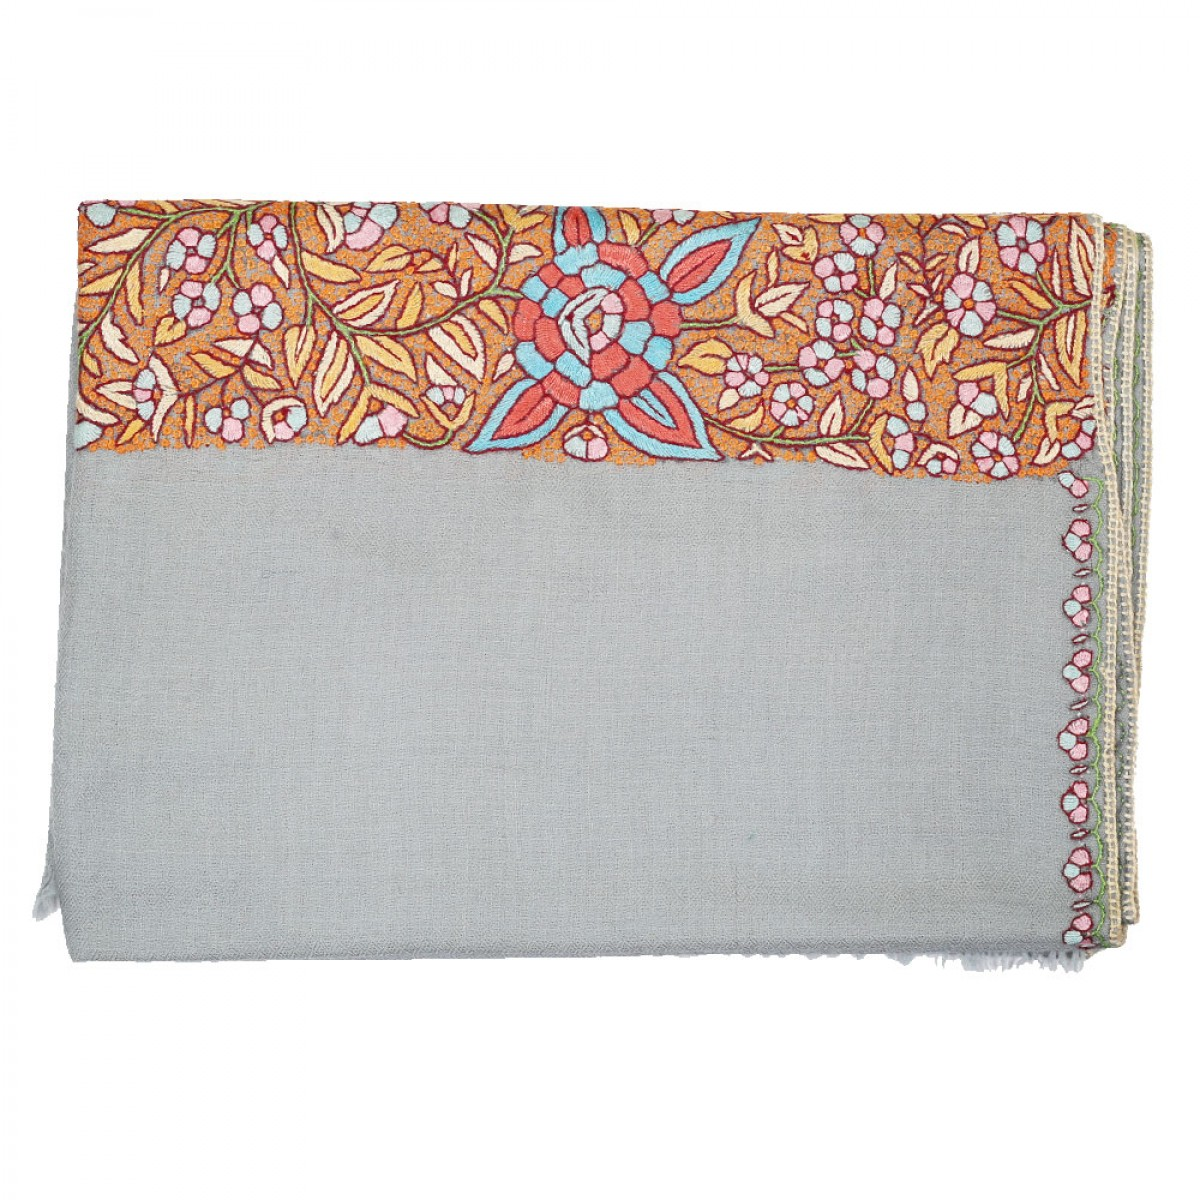 Embroidered Handloom Pashmina Stole - Grey